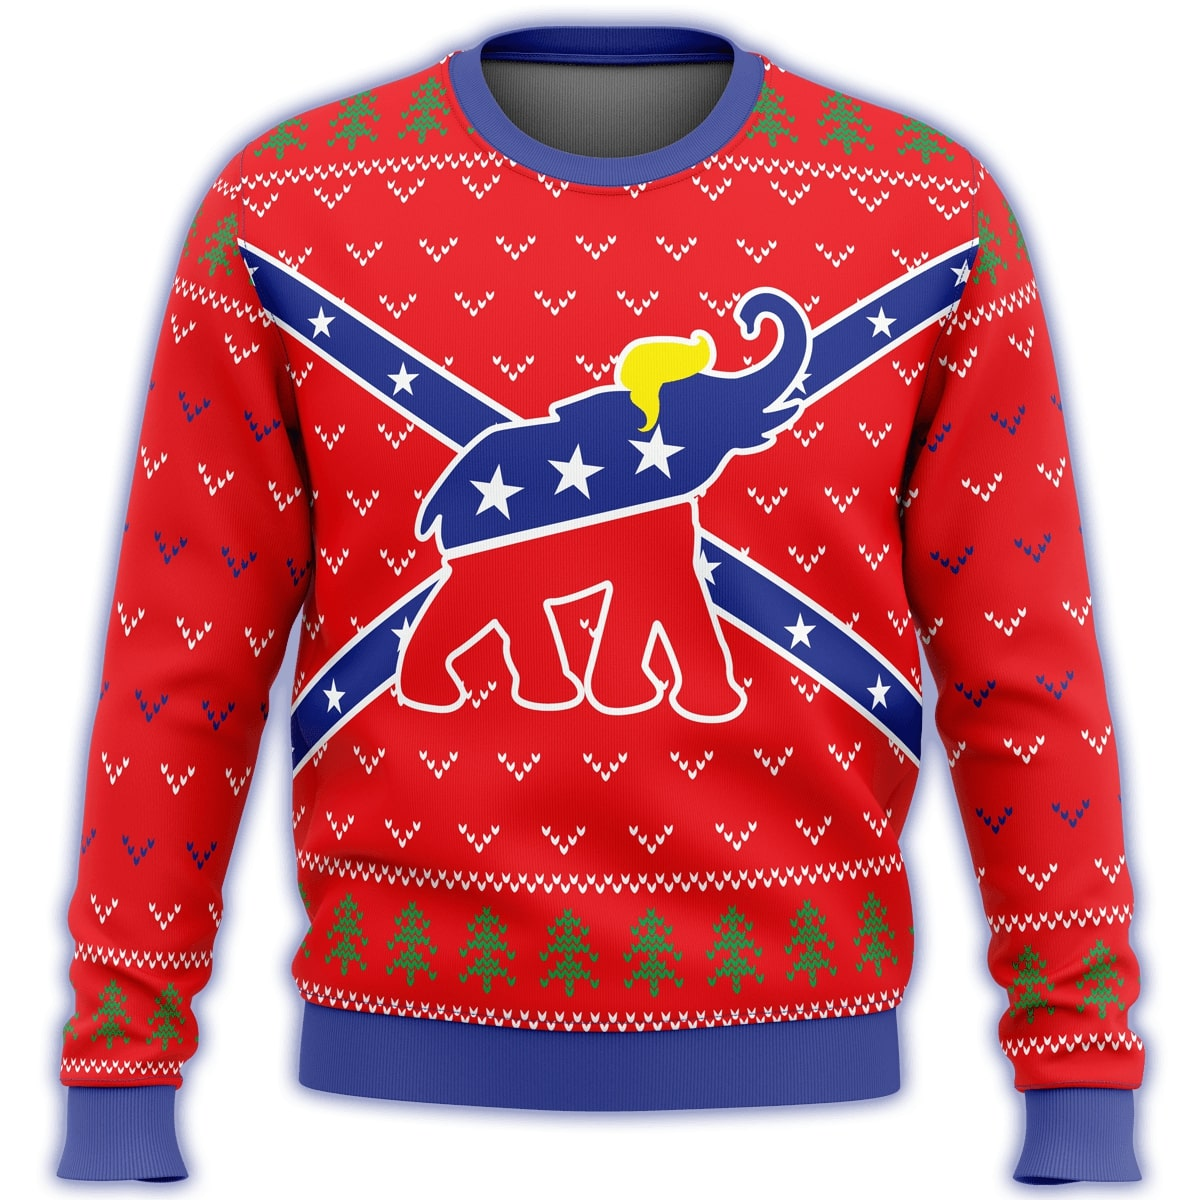 republican flag elephant all over printed ugly christmas sweater 2